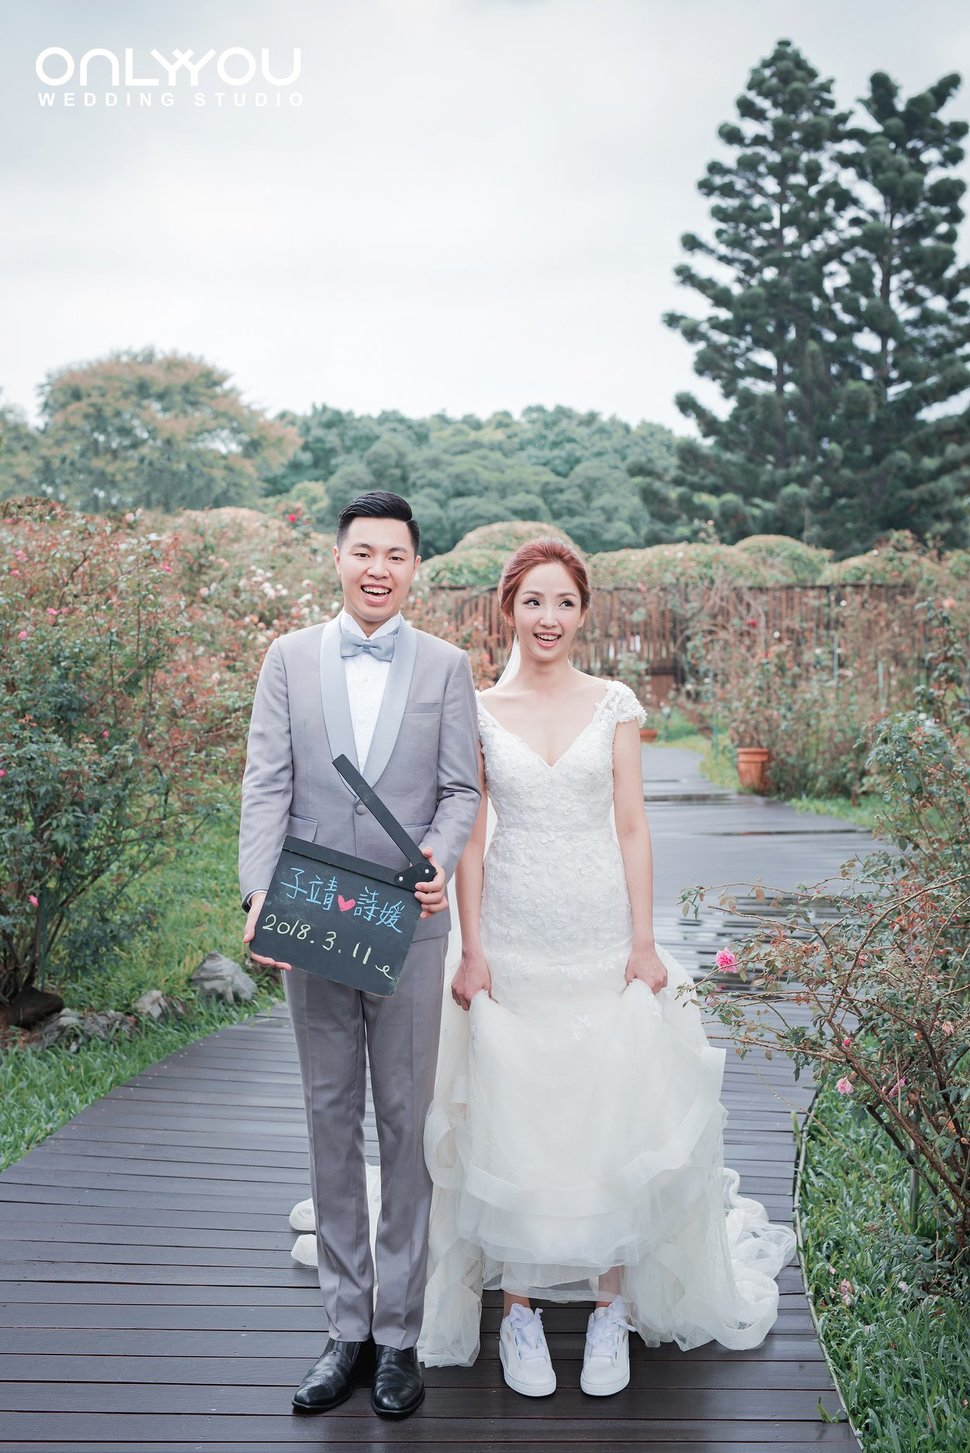 69015418_2317508901638076_5875735876218126336_o - ONLY YOU 唯你婚紗攝影《結婚吧》